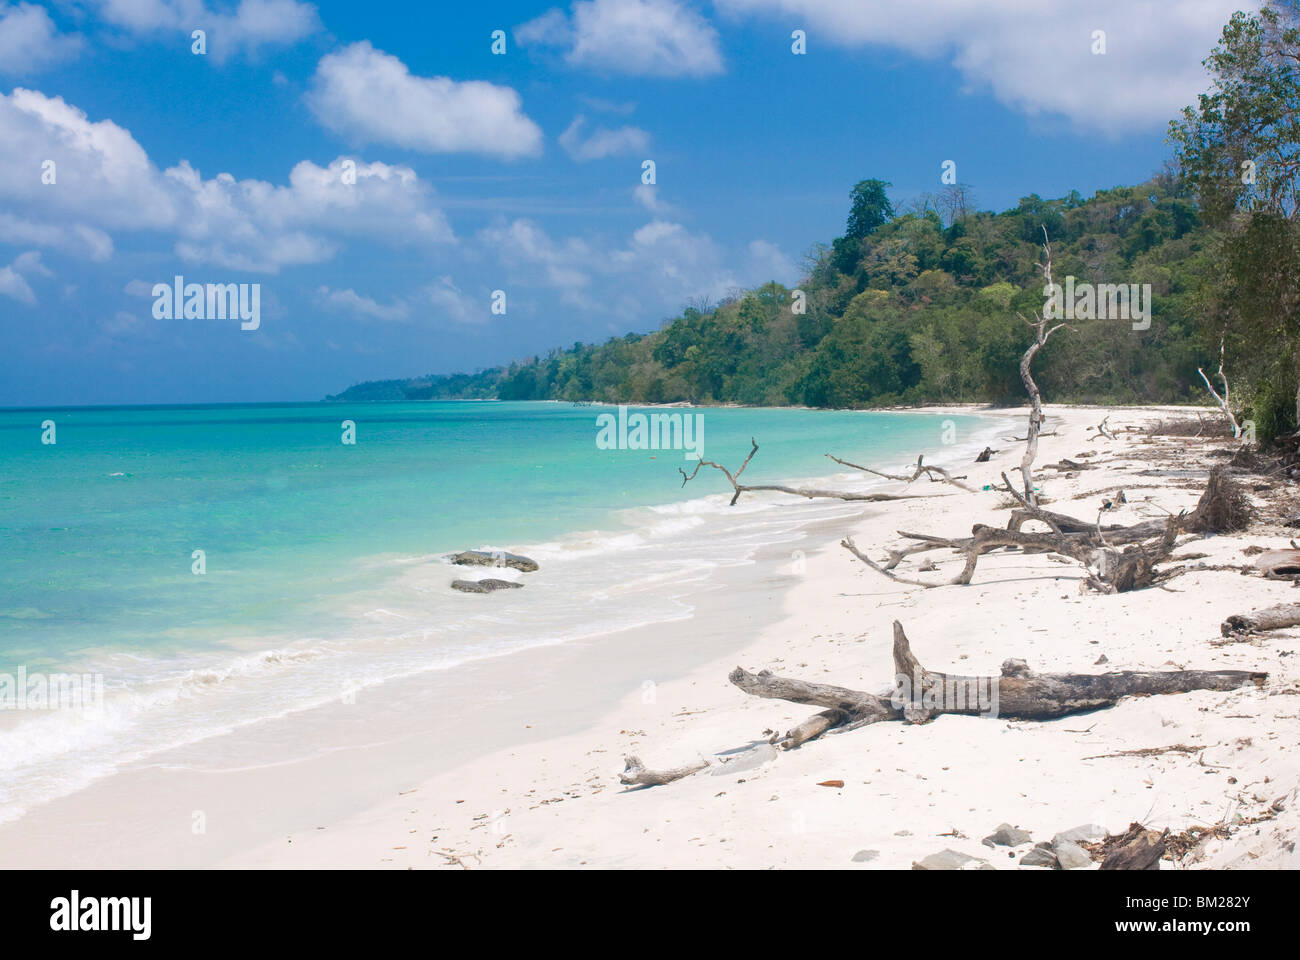 Silver sand beach with turquoise sea, Havelock Island, Andaman Islands, India, Indian Ocean, Asia - Stock Image